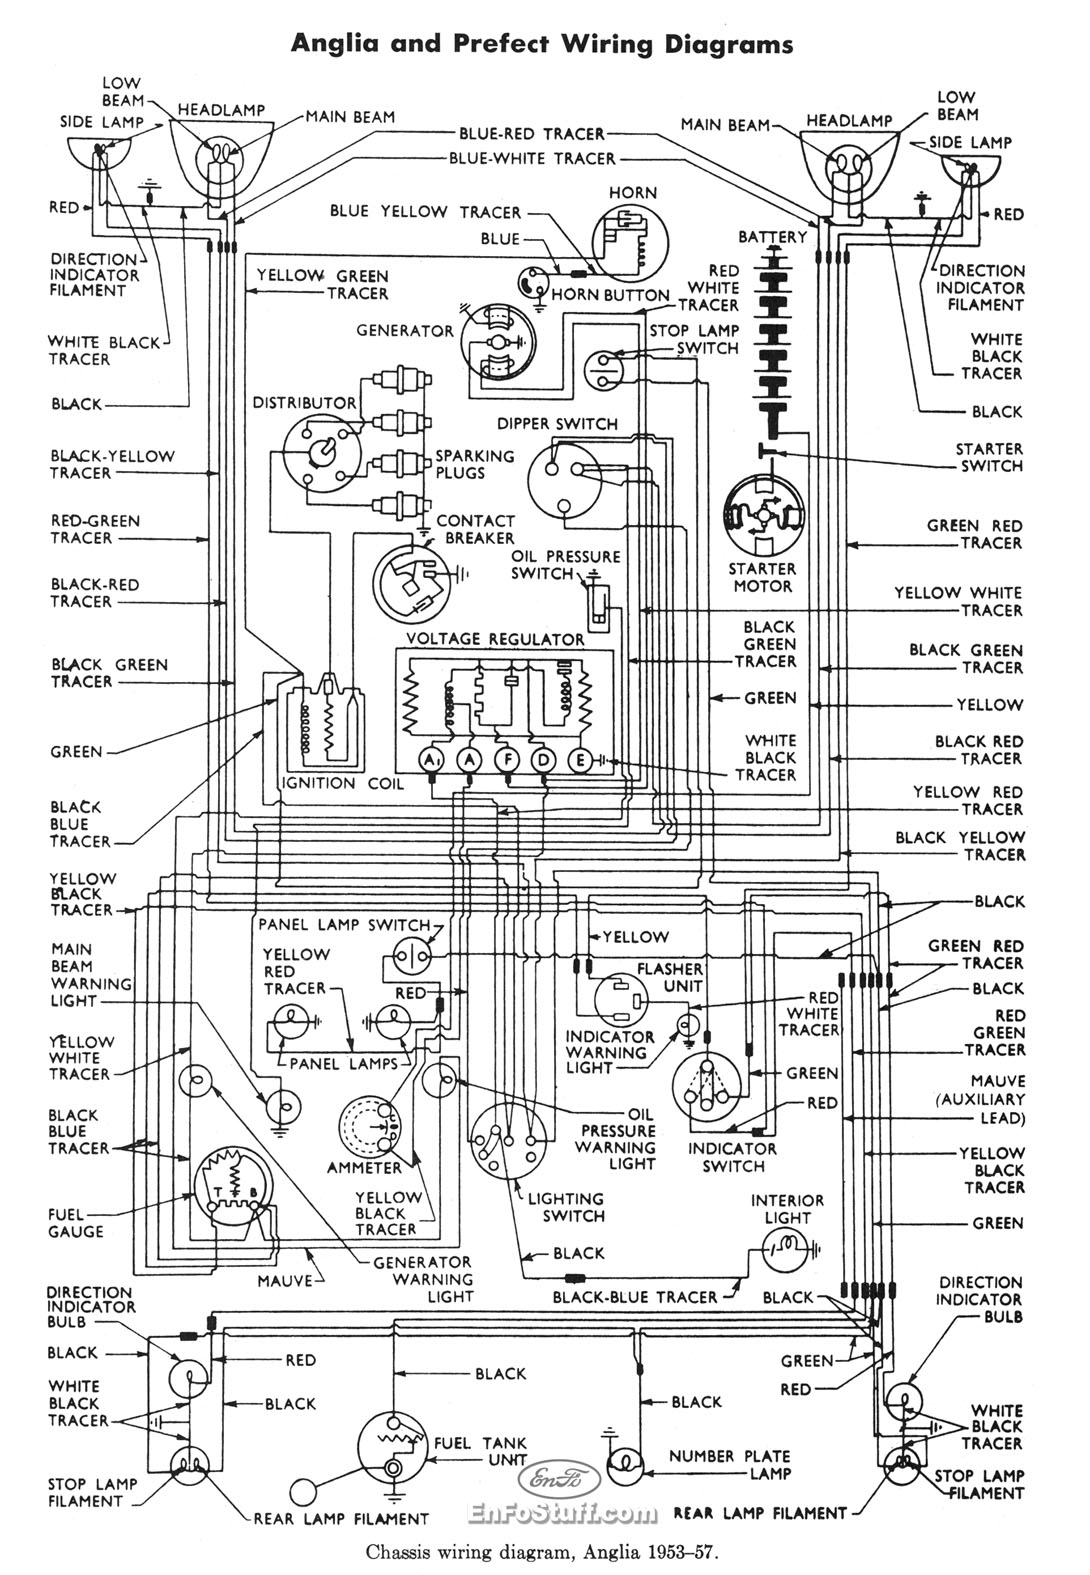 hight resolution of ford f800 wiring schematic wiring diagram source 1995 ford e350 tail light diagram ford f800 wiring schematic